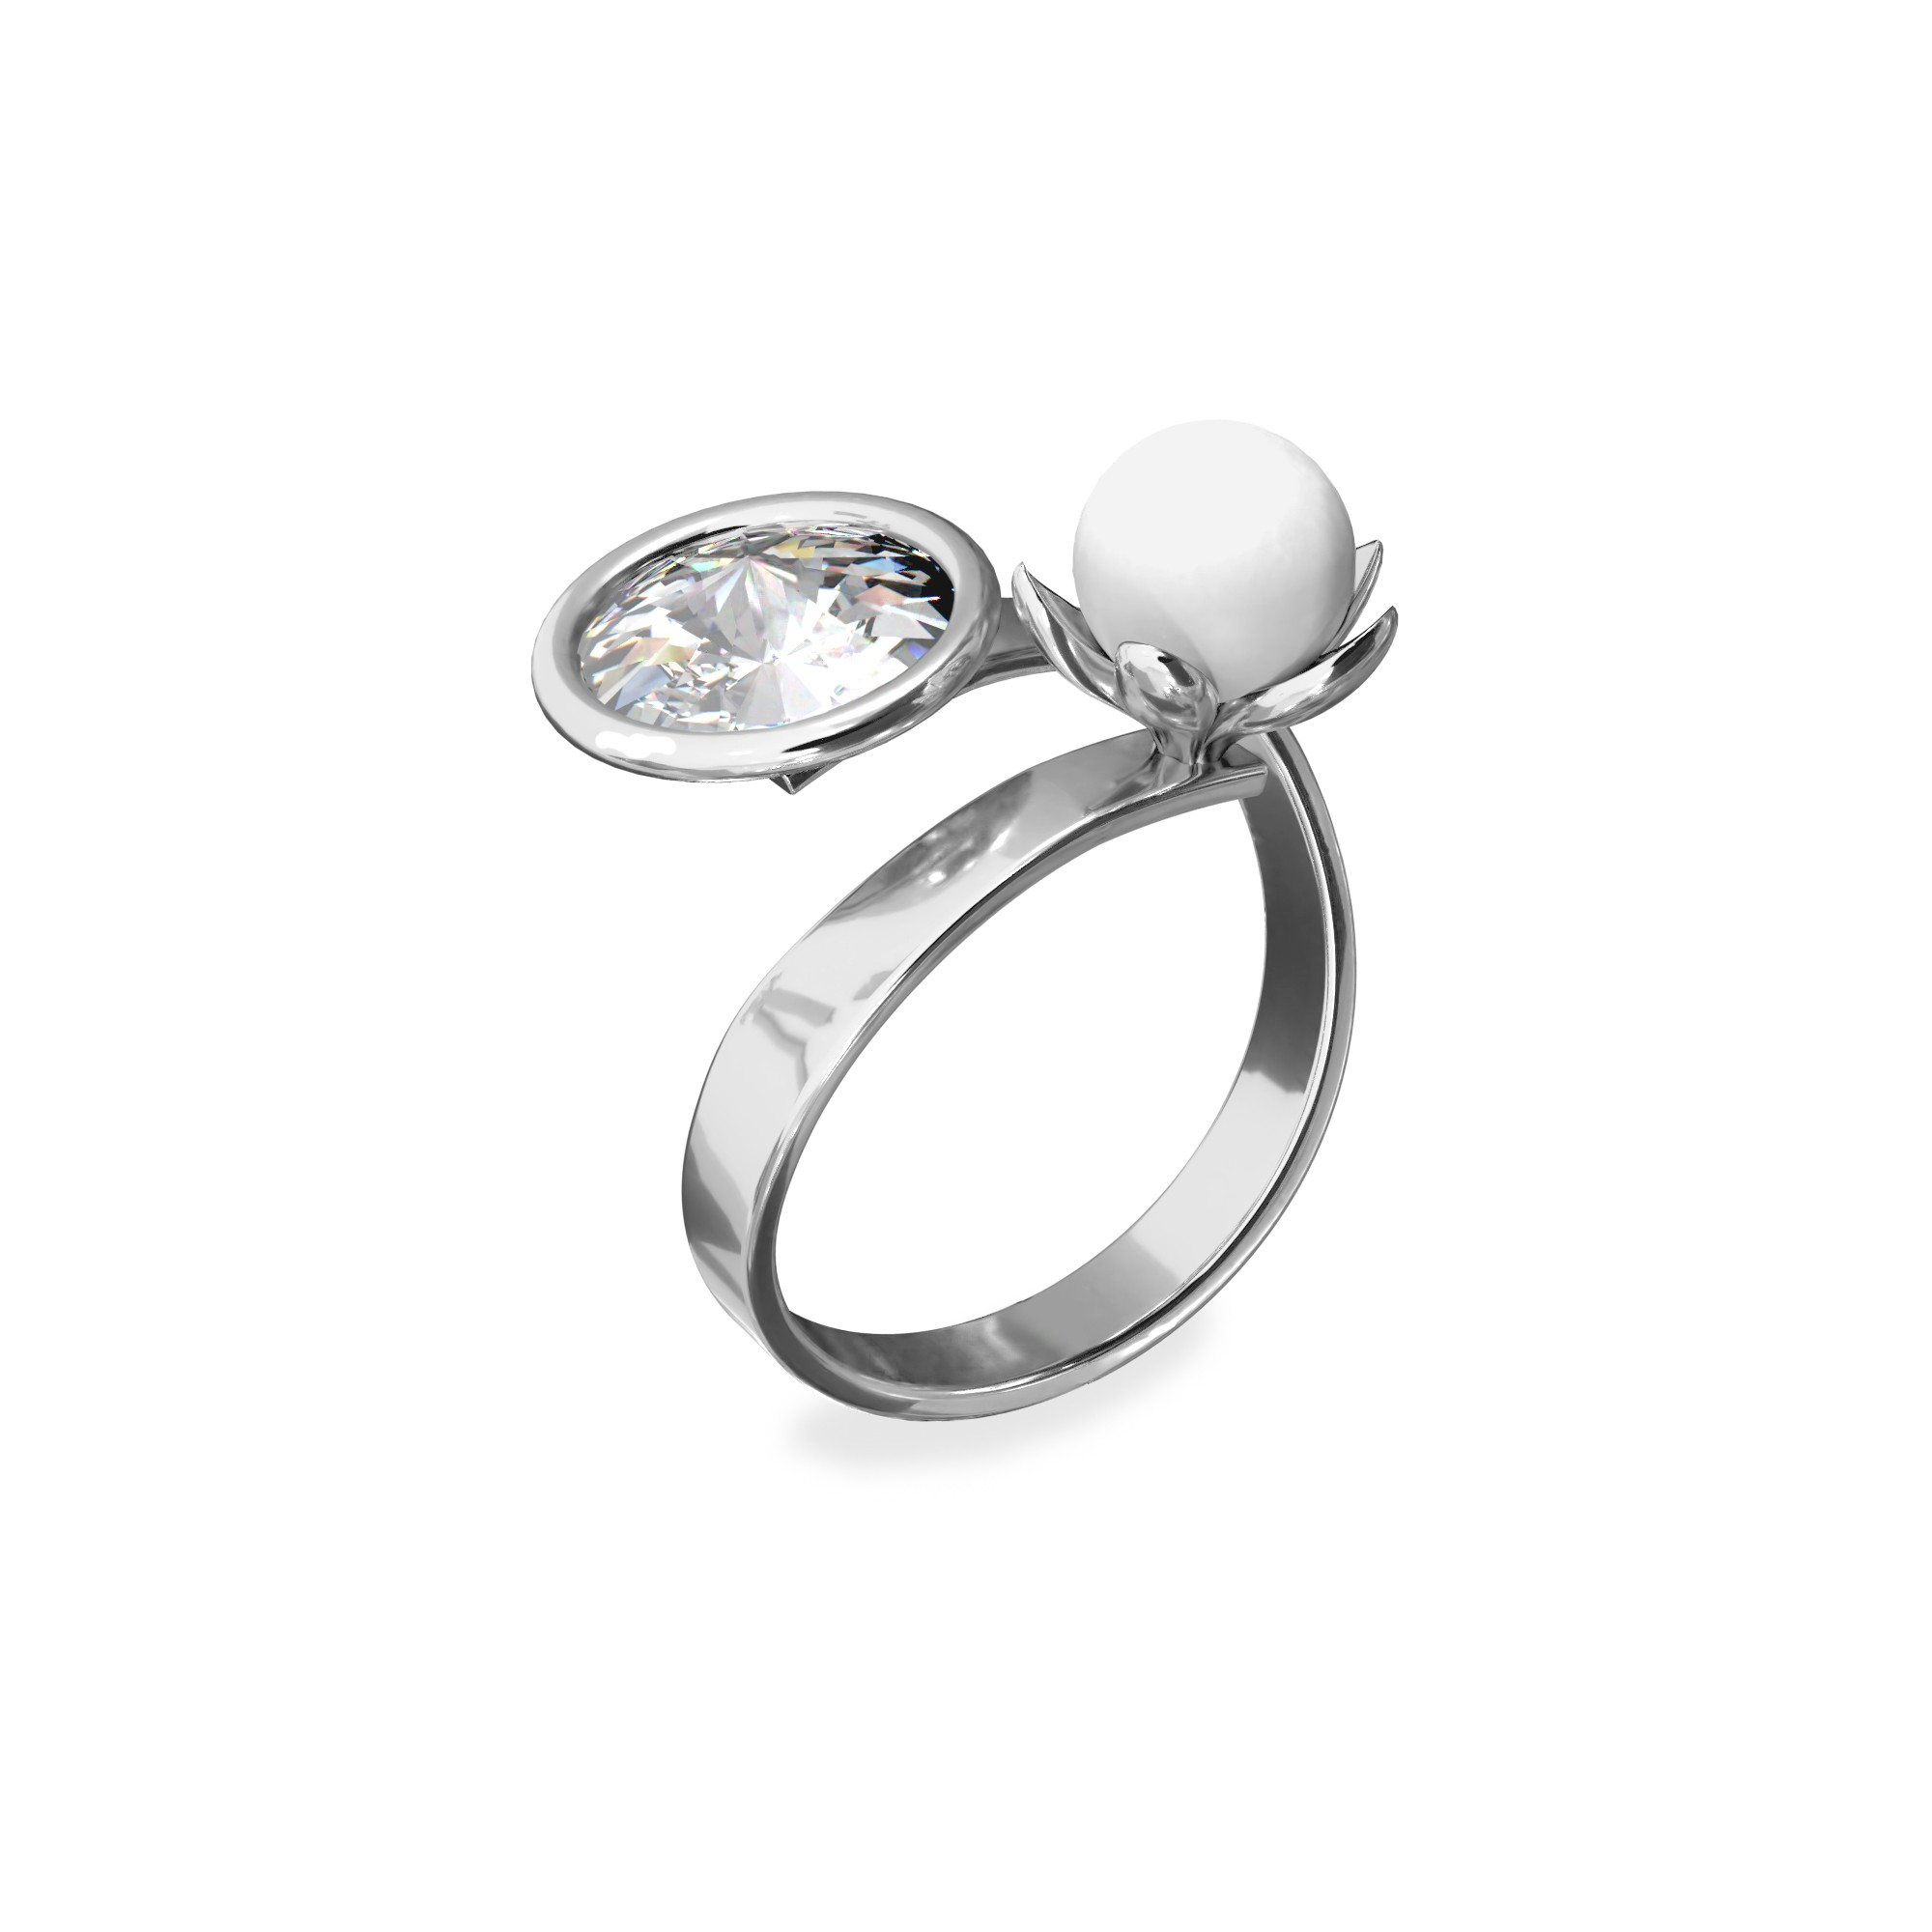 Pearl ring, silver 925 My RING™